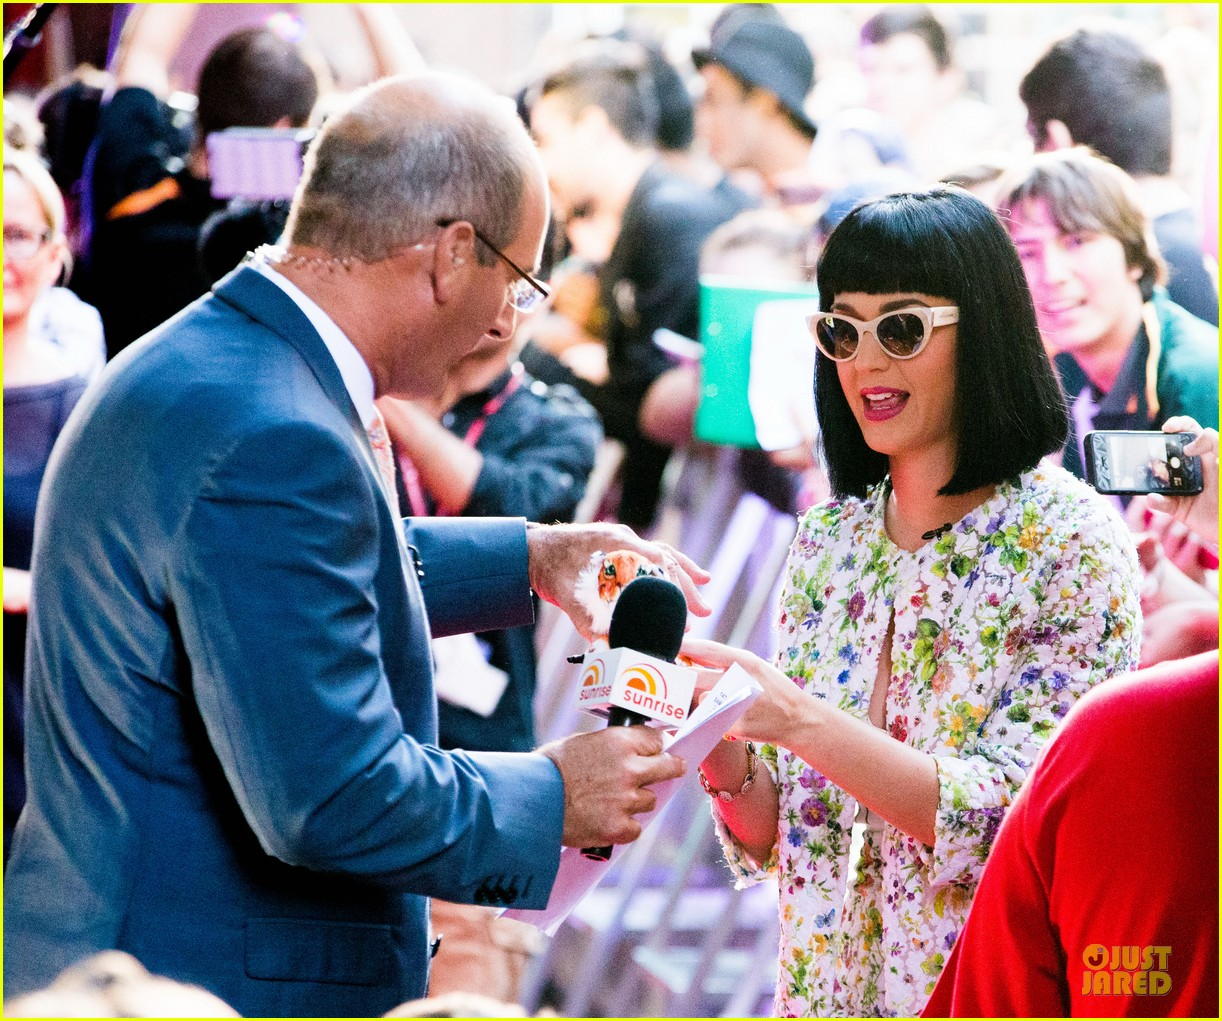 katy perry excites australian fans with her colorful spirit 023066201